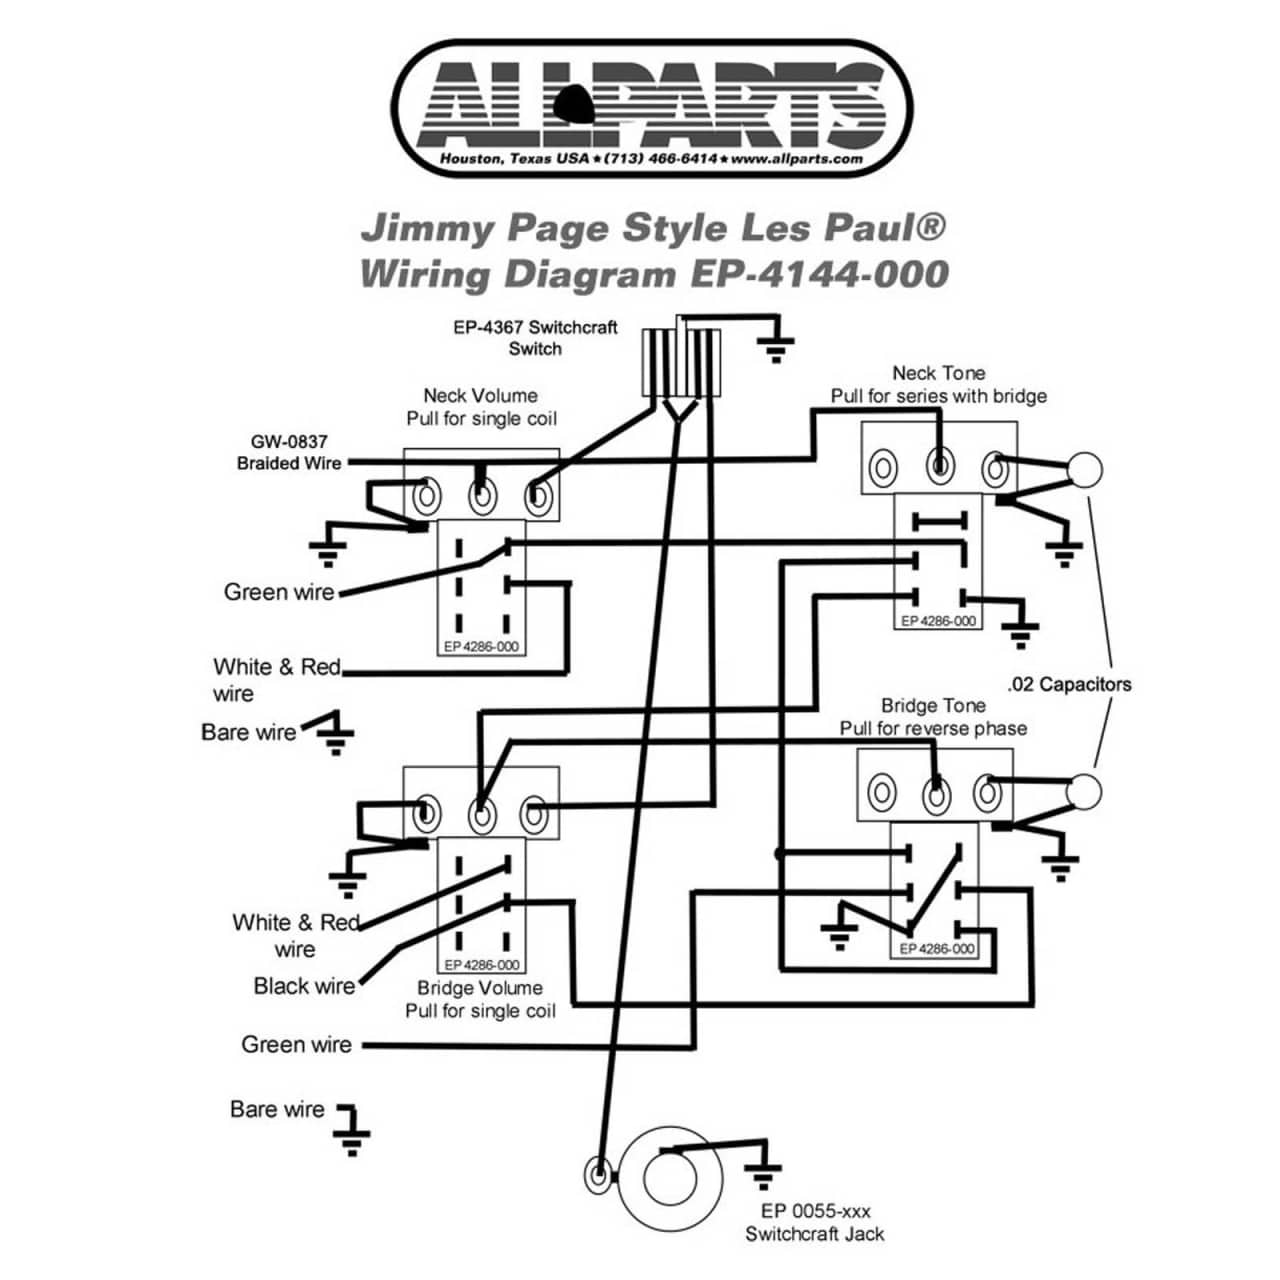 gibson les paul drawing at getdrawings free for personal use Amp Cabinet 1280x1280 wiring kit jimmy page les paul plete with reverb